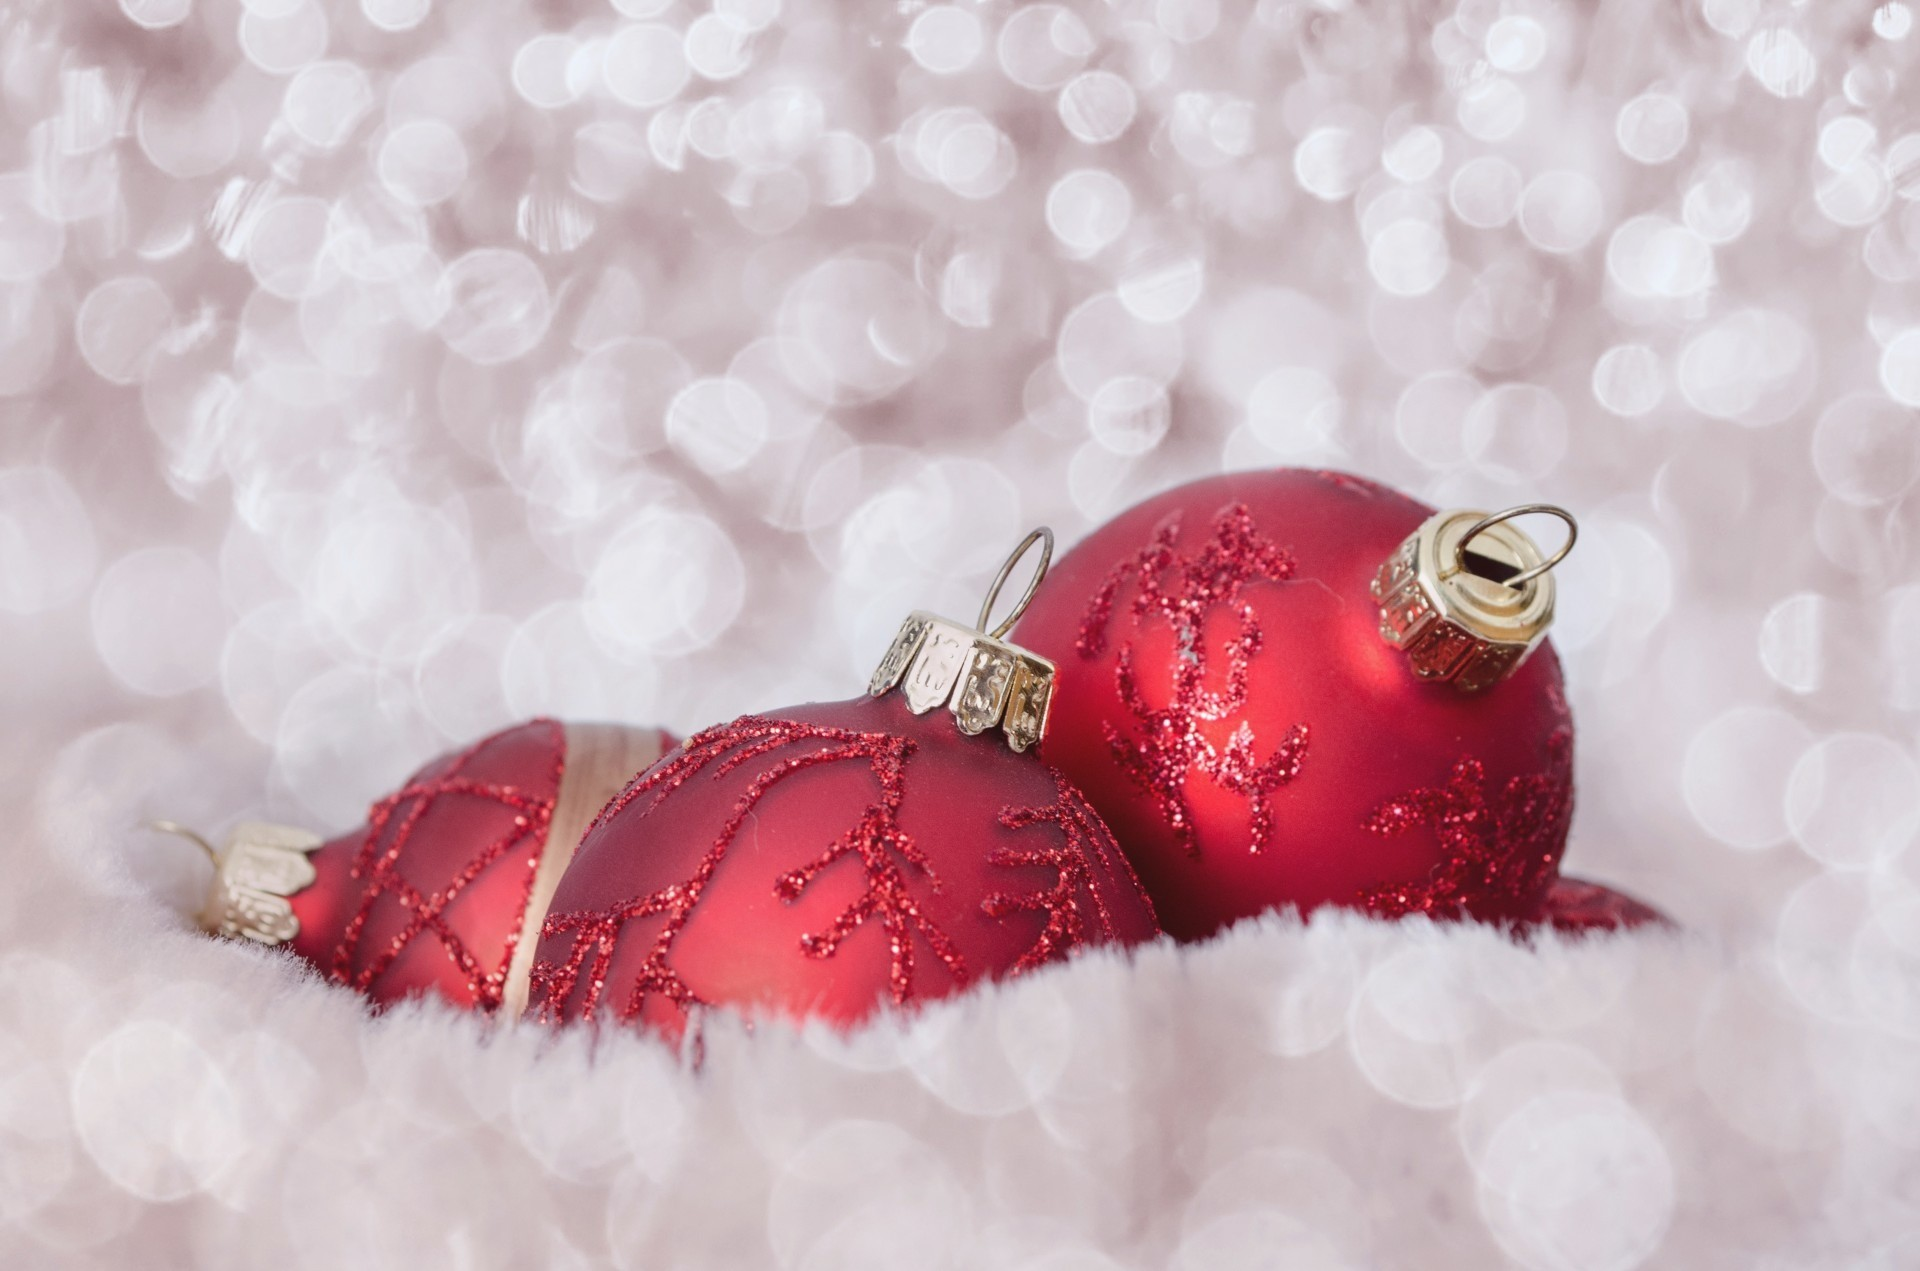 snow winter flower petal heart decoration red holiday pink christmas close  up background seasons postcard organ